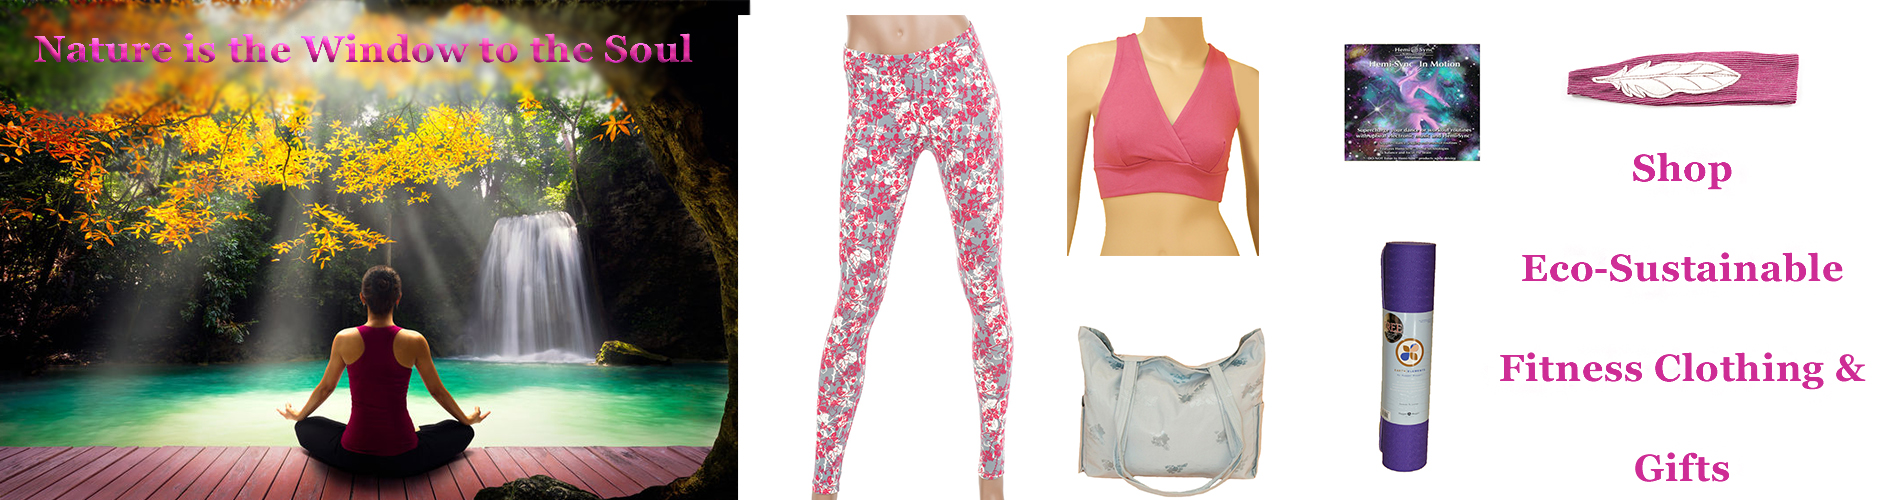 Shop Eco-Sustainable Fitness Clothing & Gifts